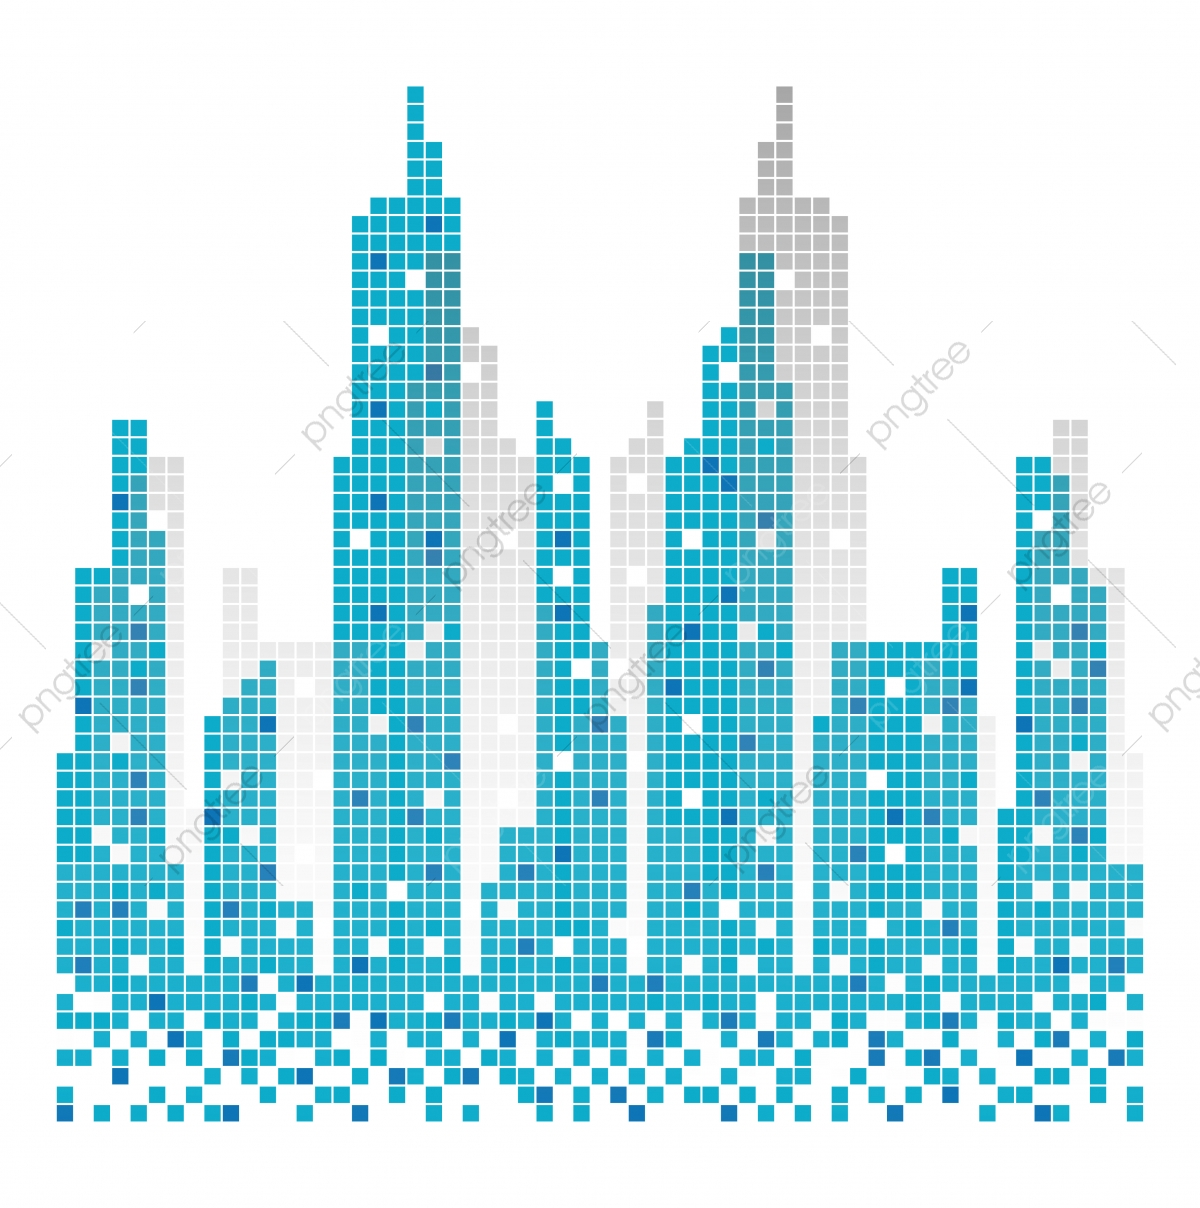 City Skyline Building Pixels Illustration Vector, Architecture, Skyline, Urban PNG and Vector ...